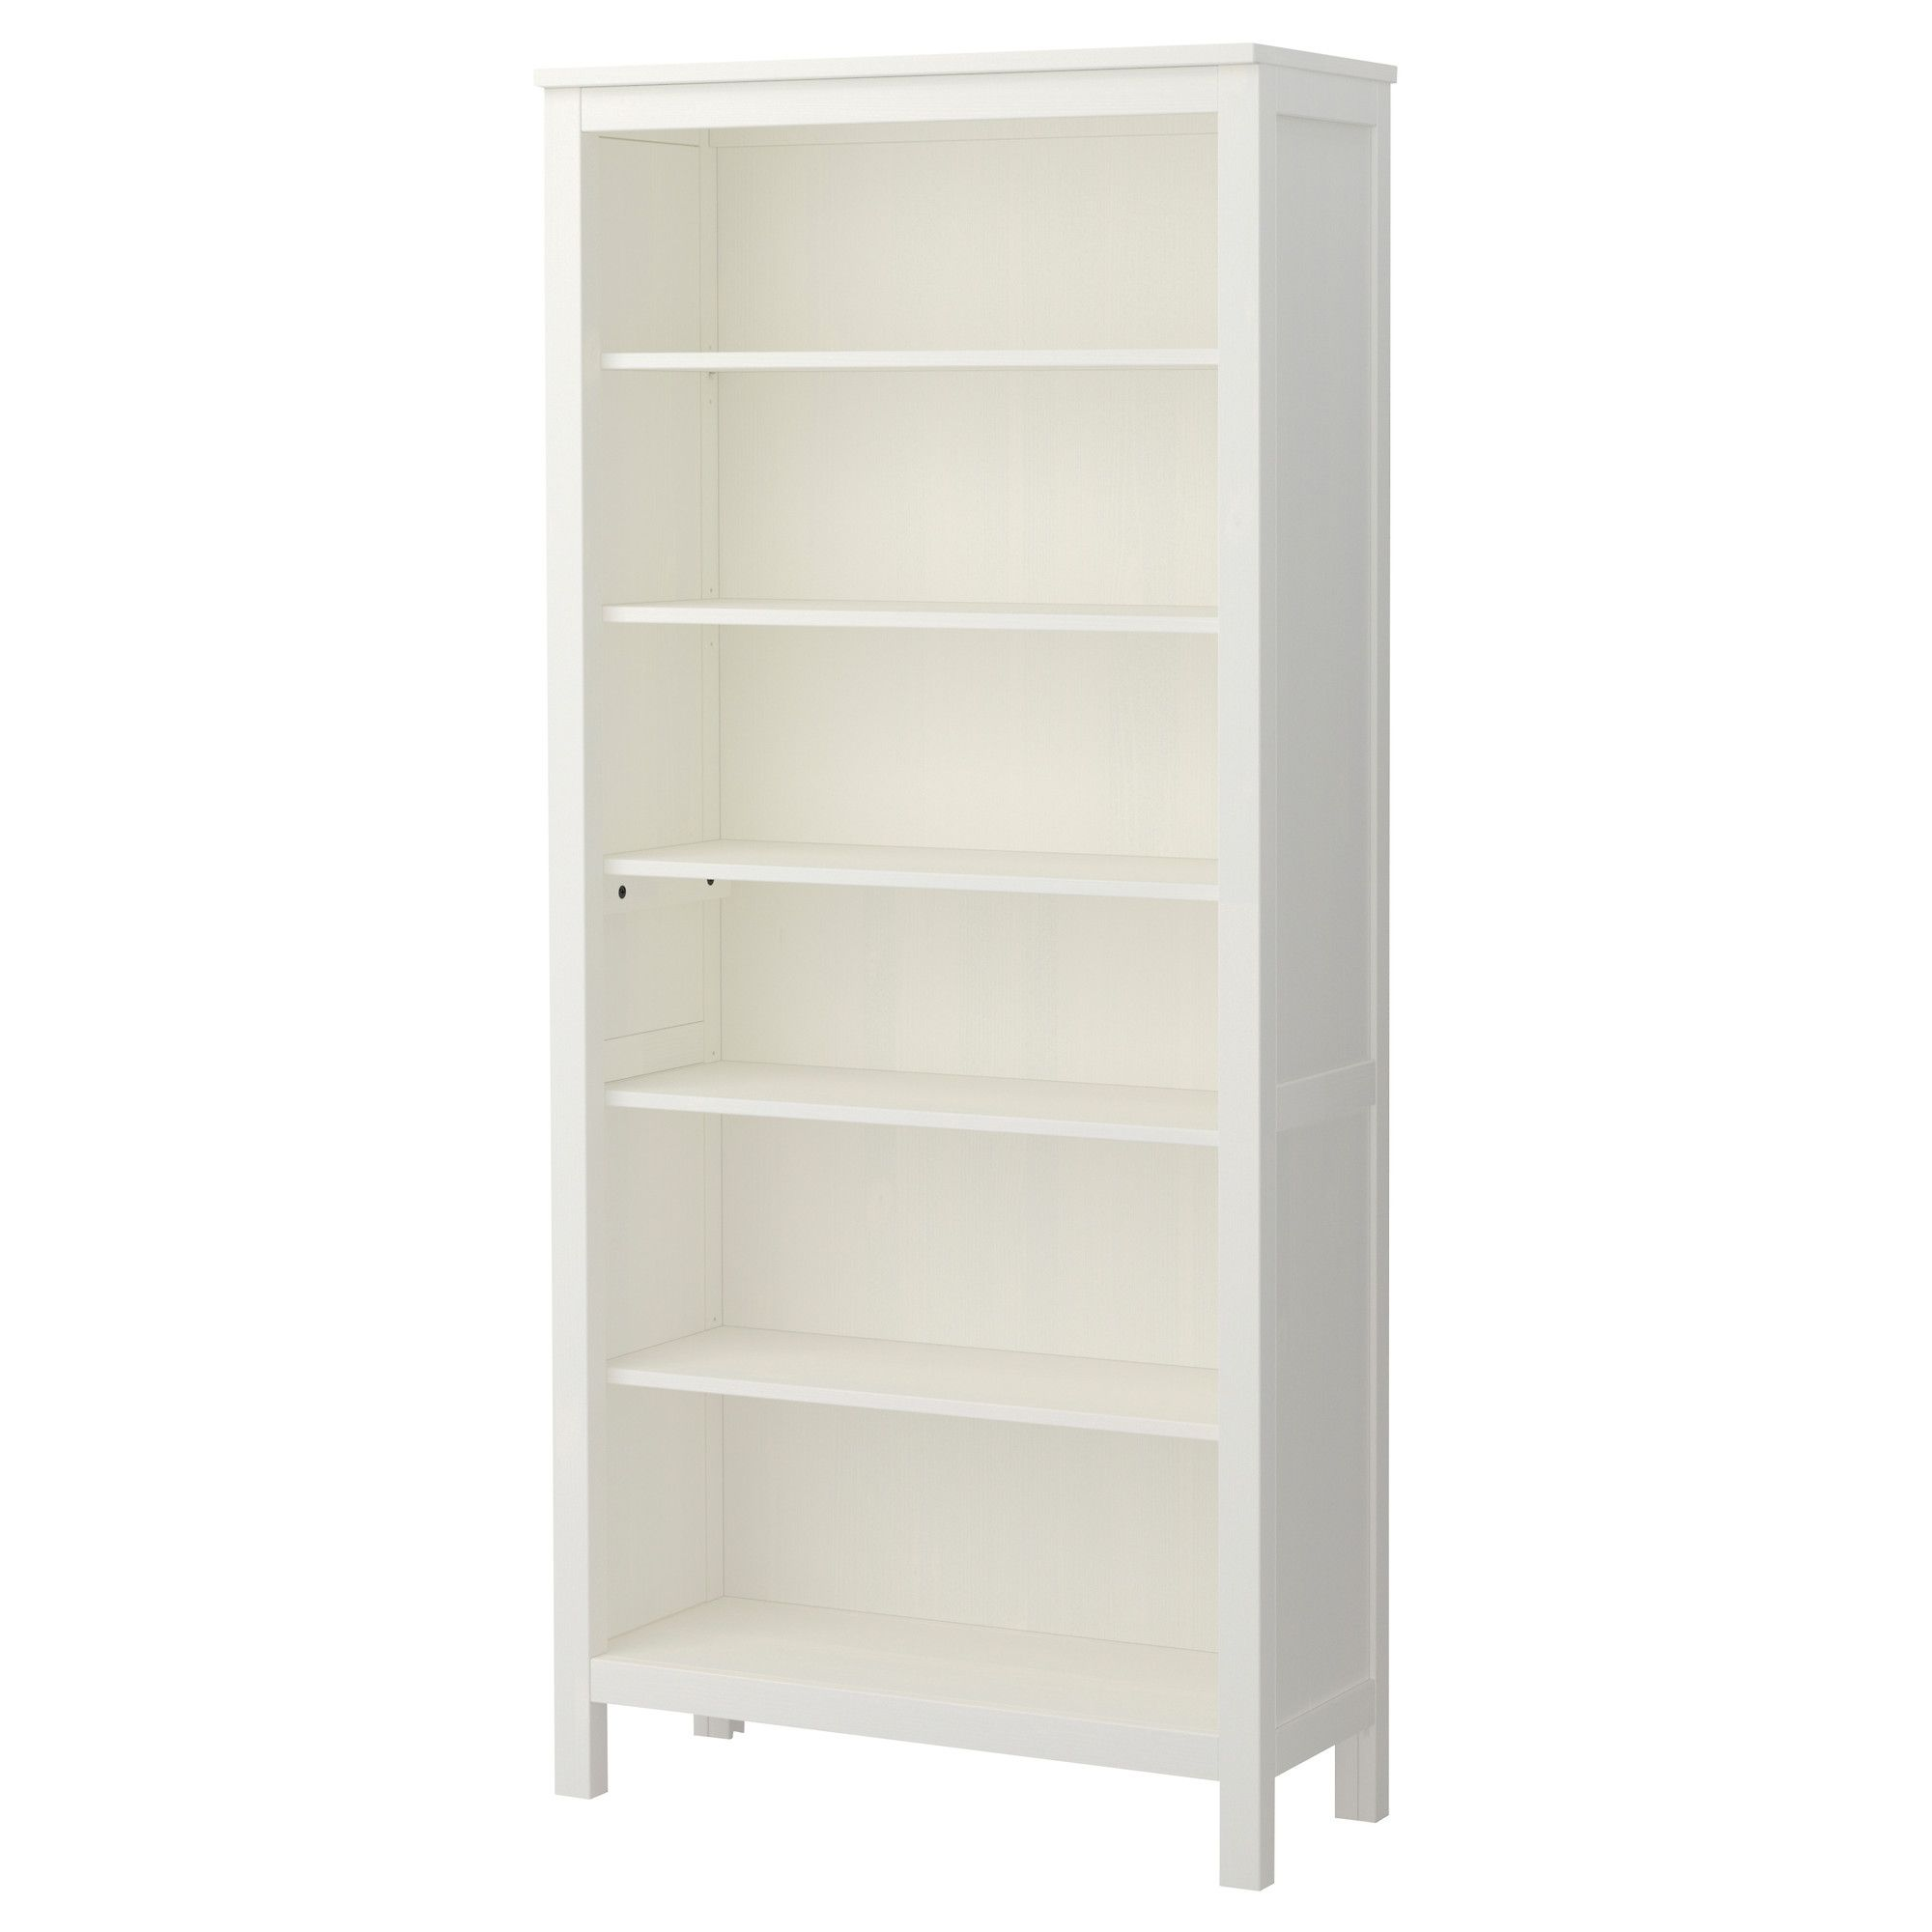 Incredibly Simple Bookcase I Want For My Office -- HEMNES